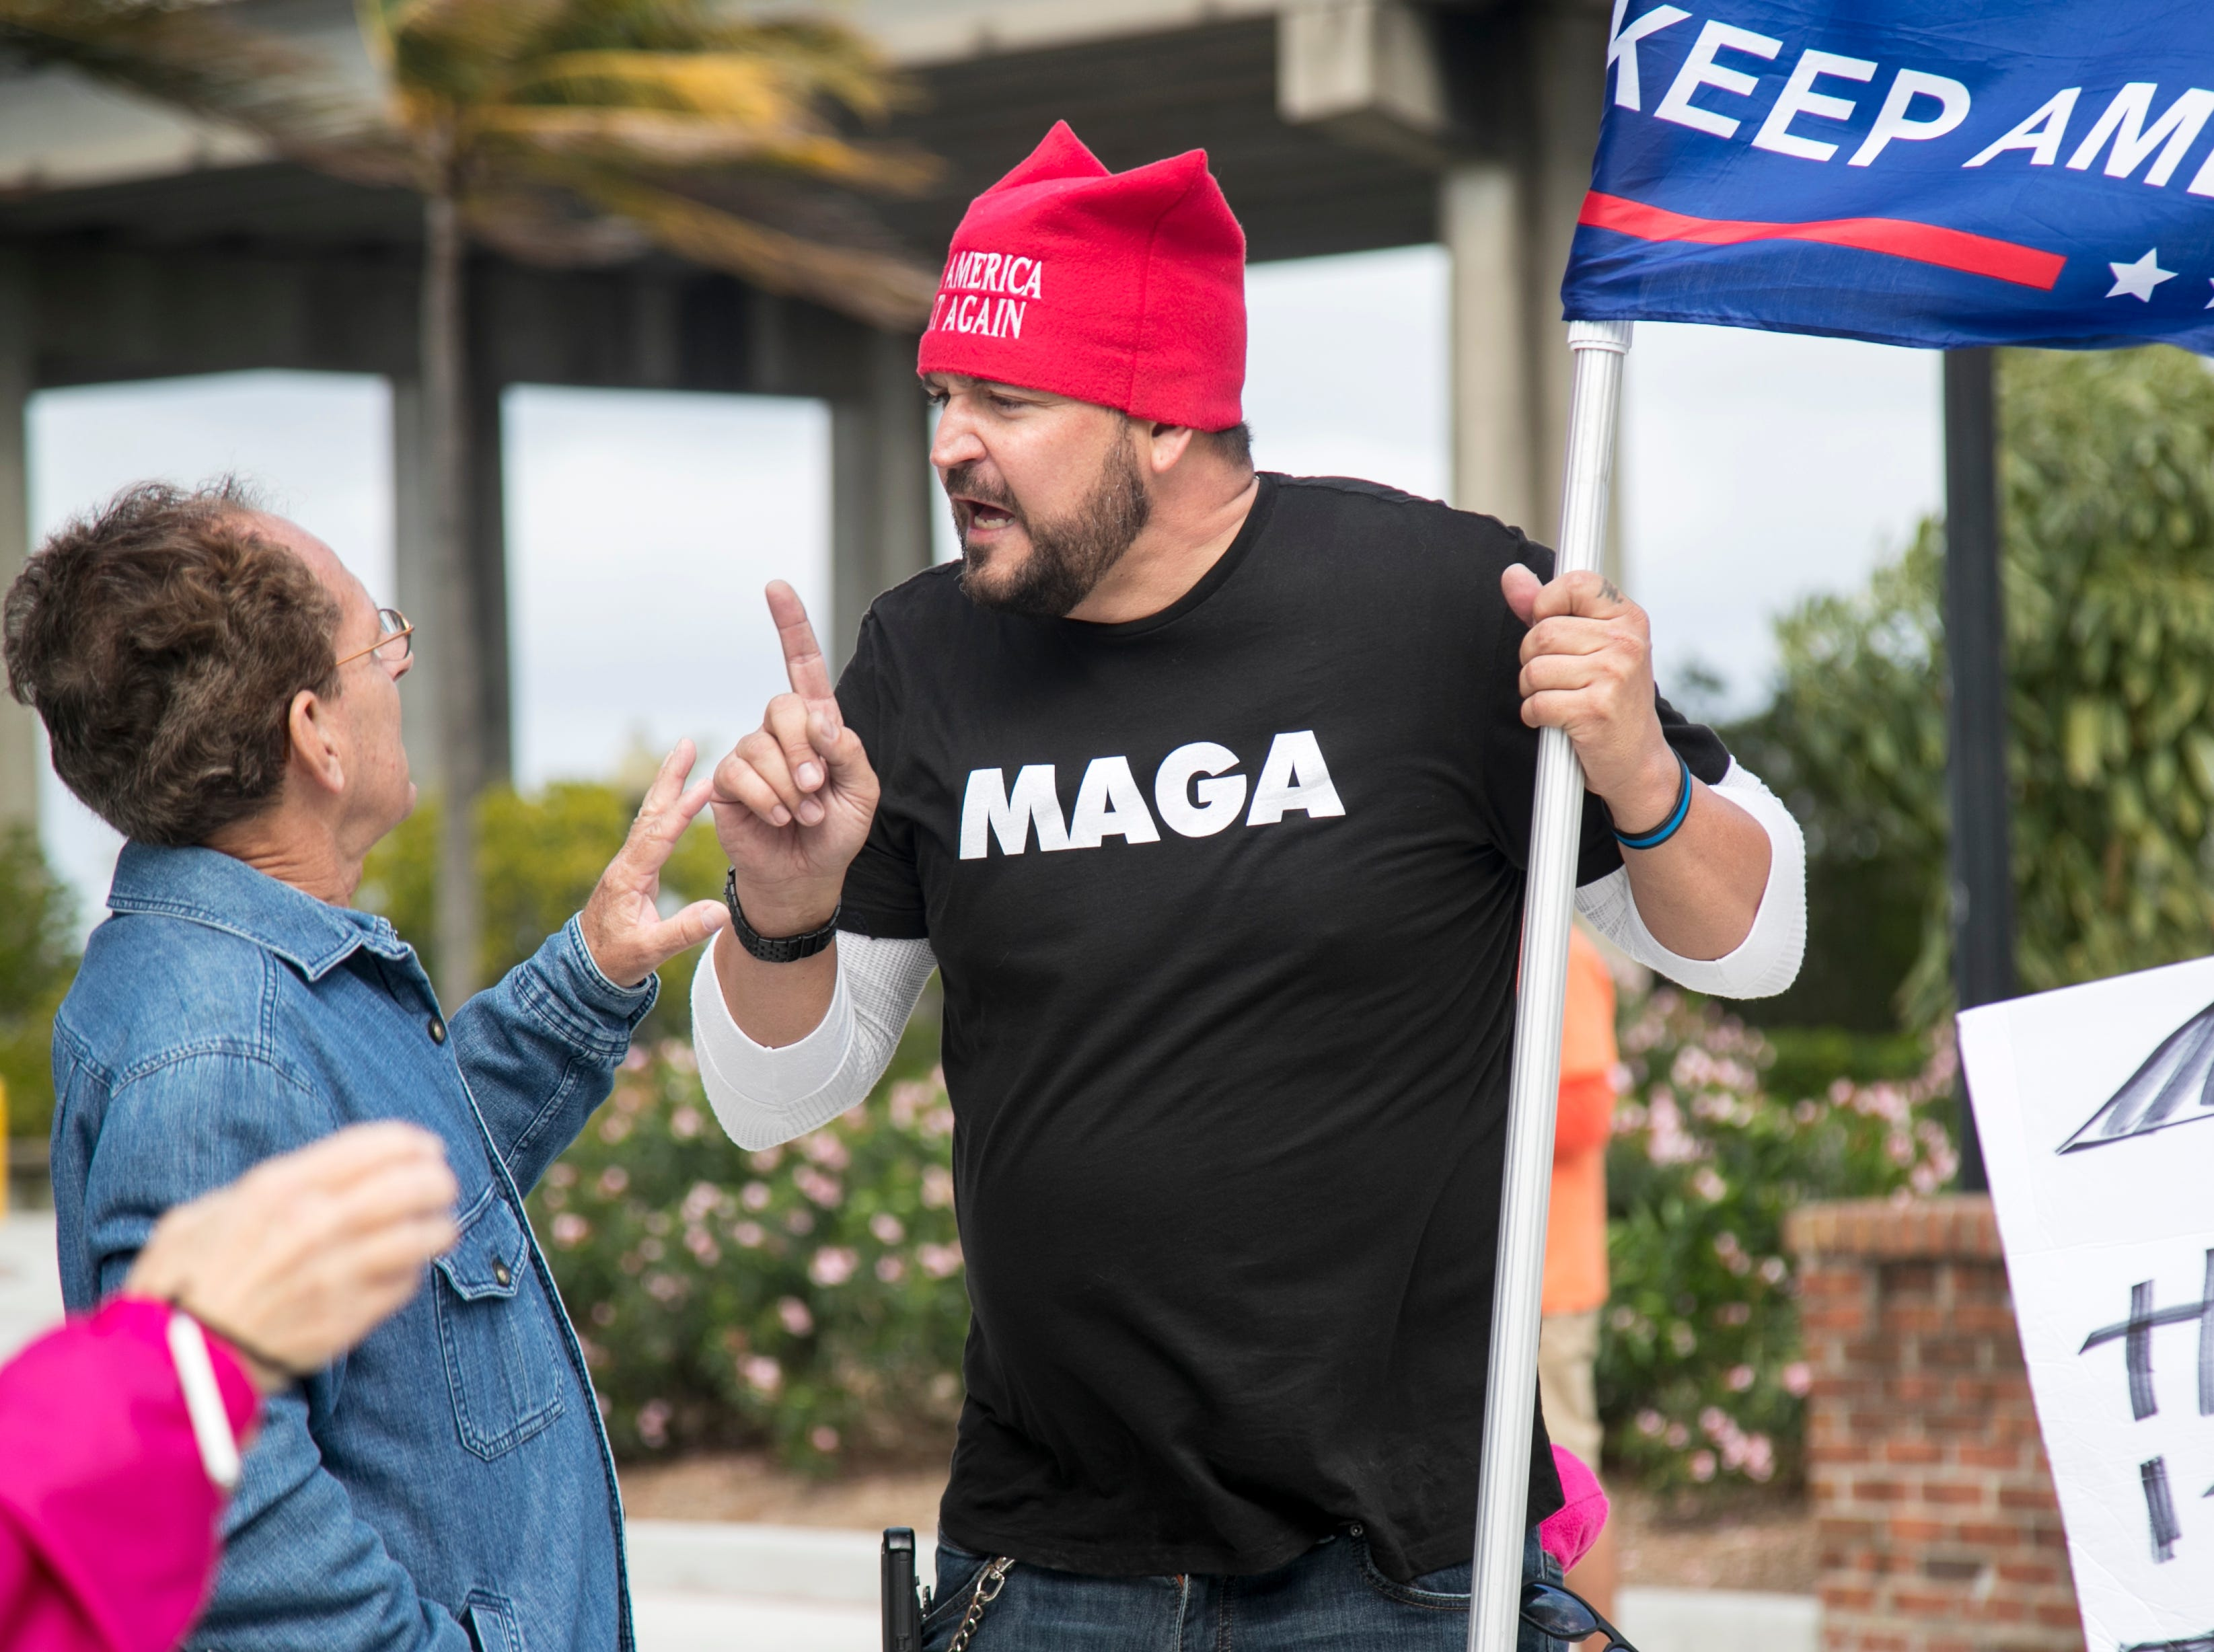 Gary Snow, right, confronts a man participating in the Fort Myers Women's March on Sunday, Jan. 20, 2019, at Centennial Park.